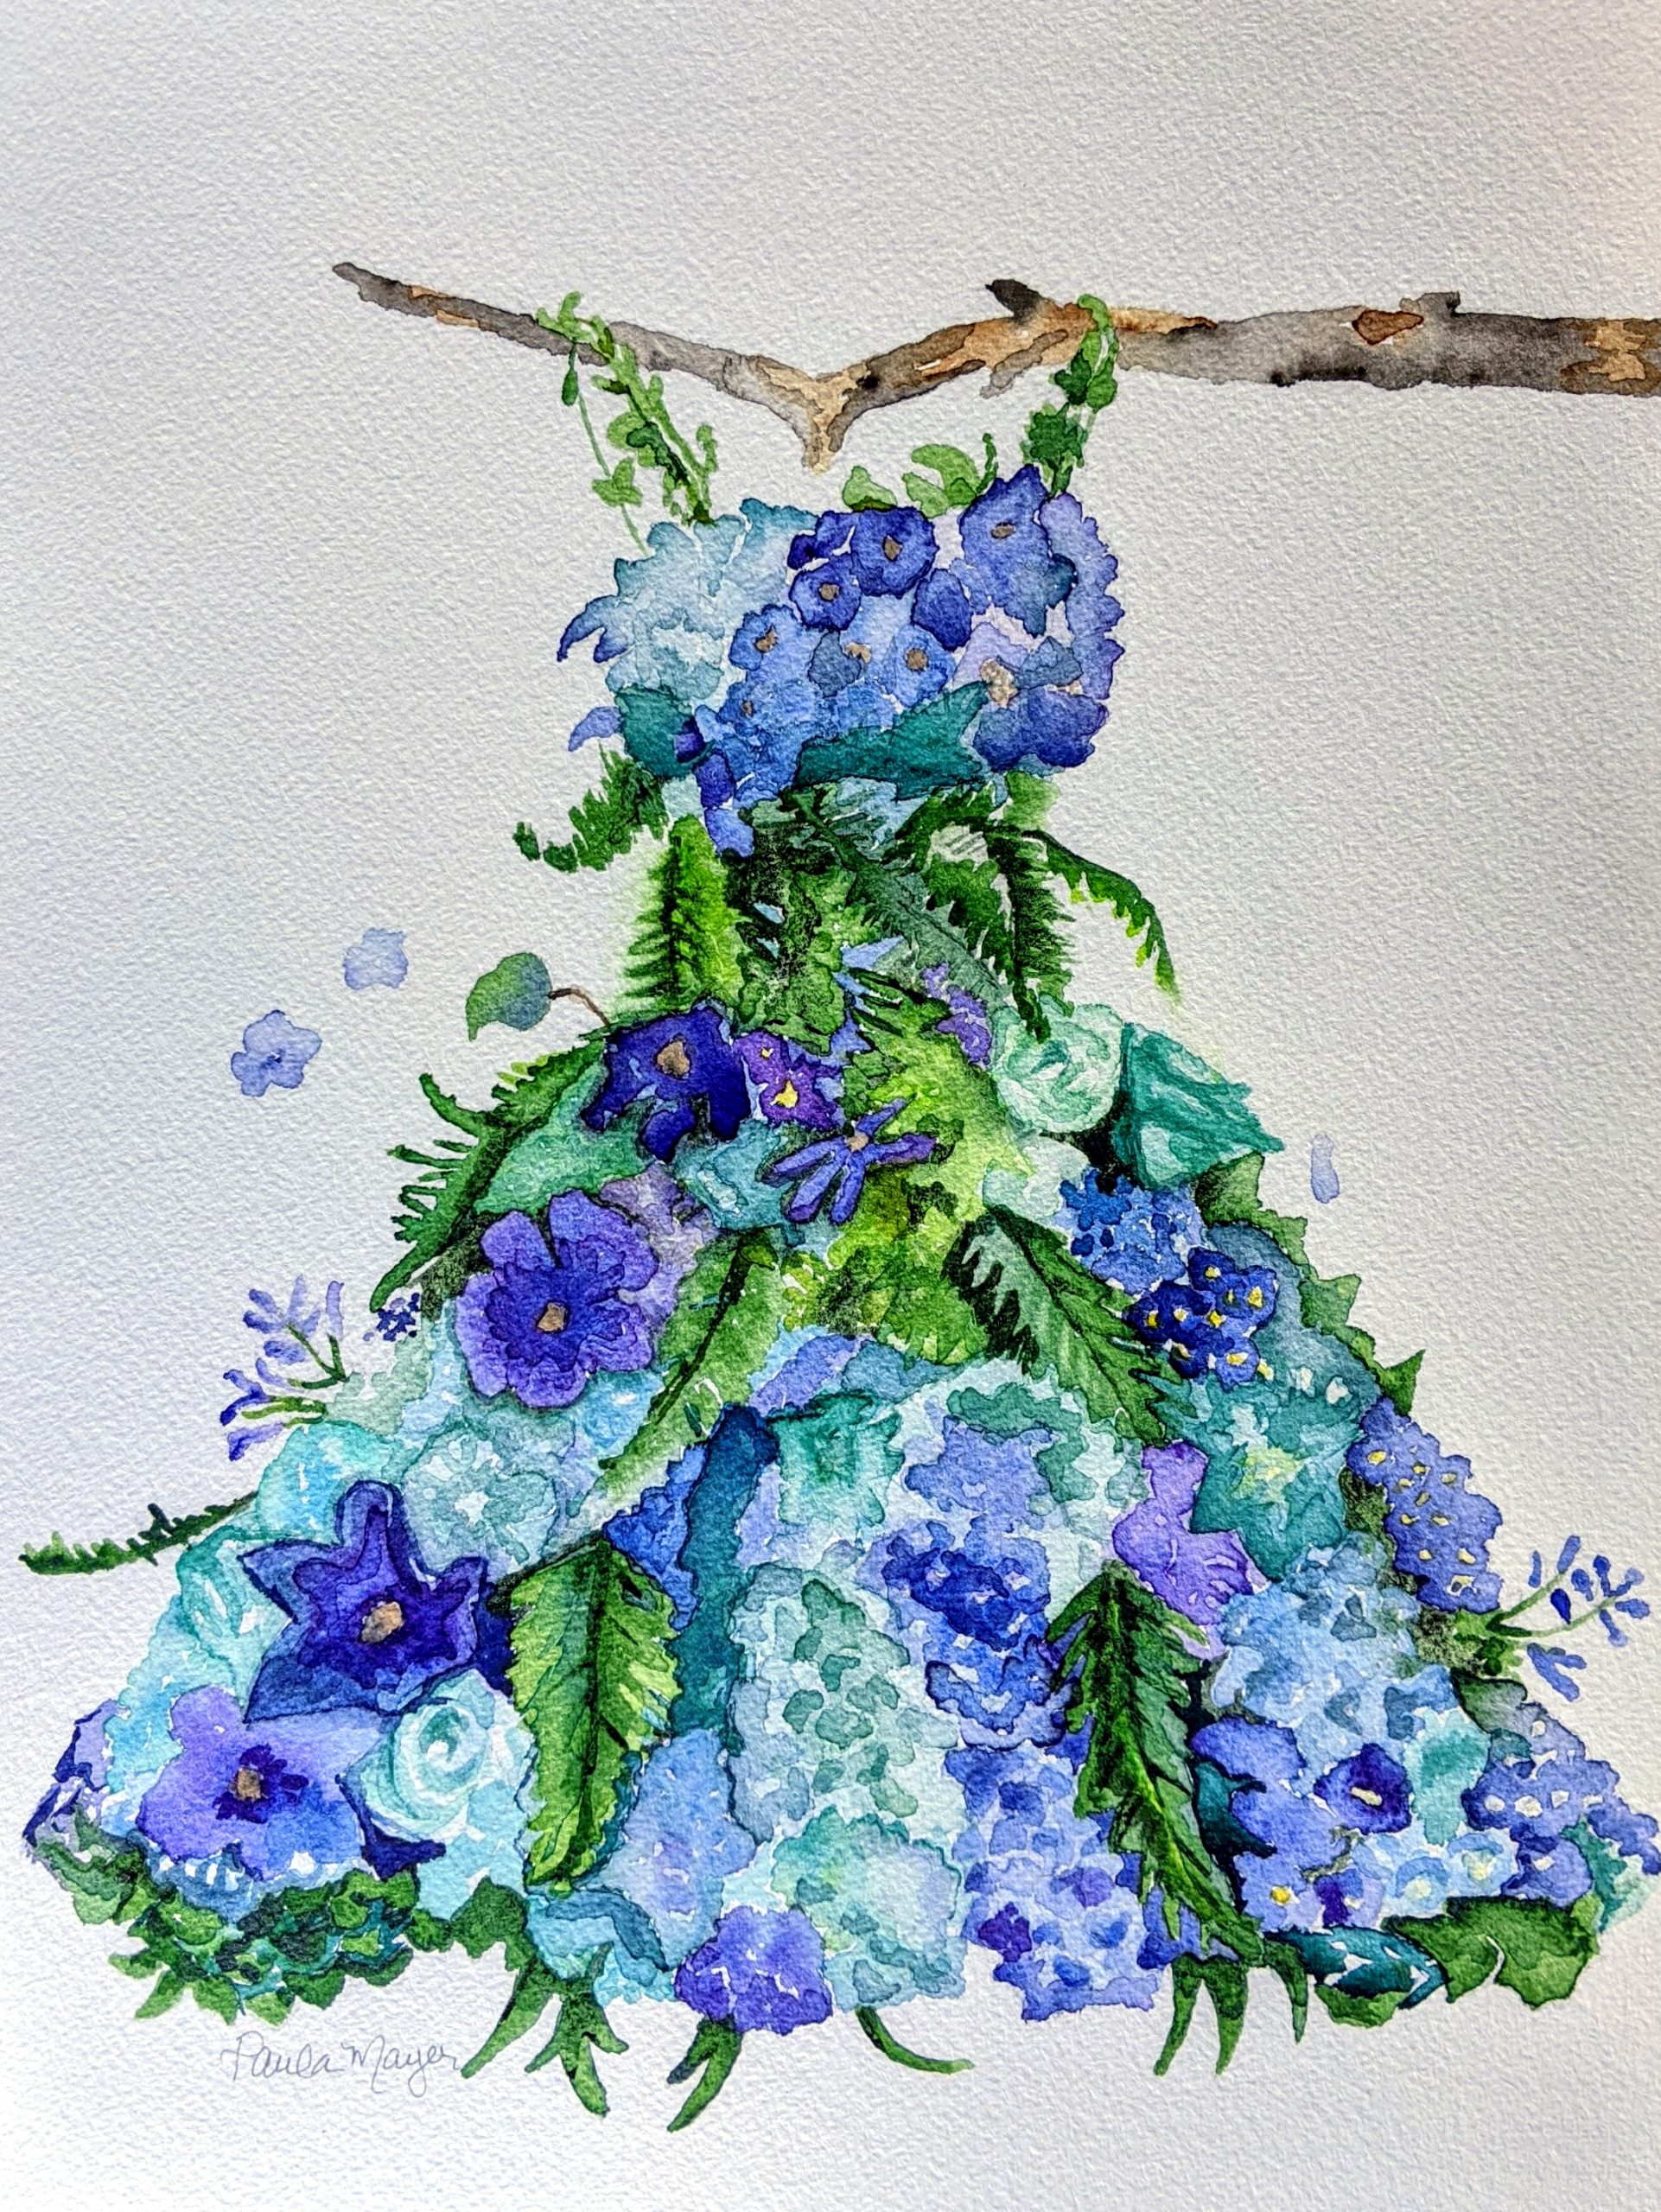 Watercolor Artist. Commissions available